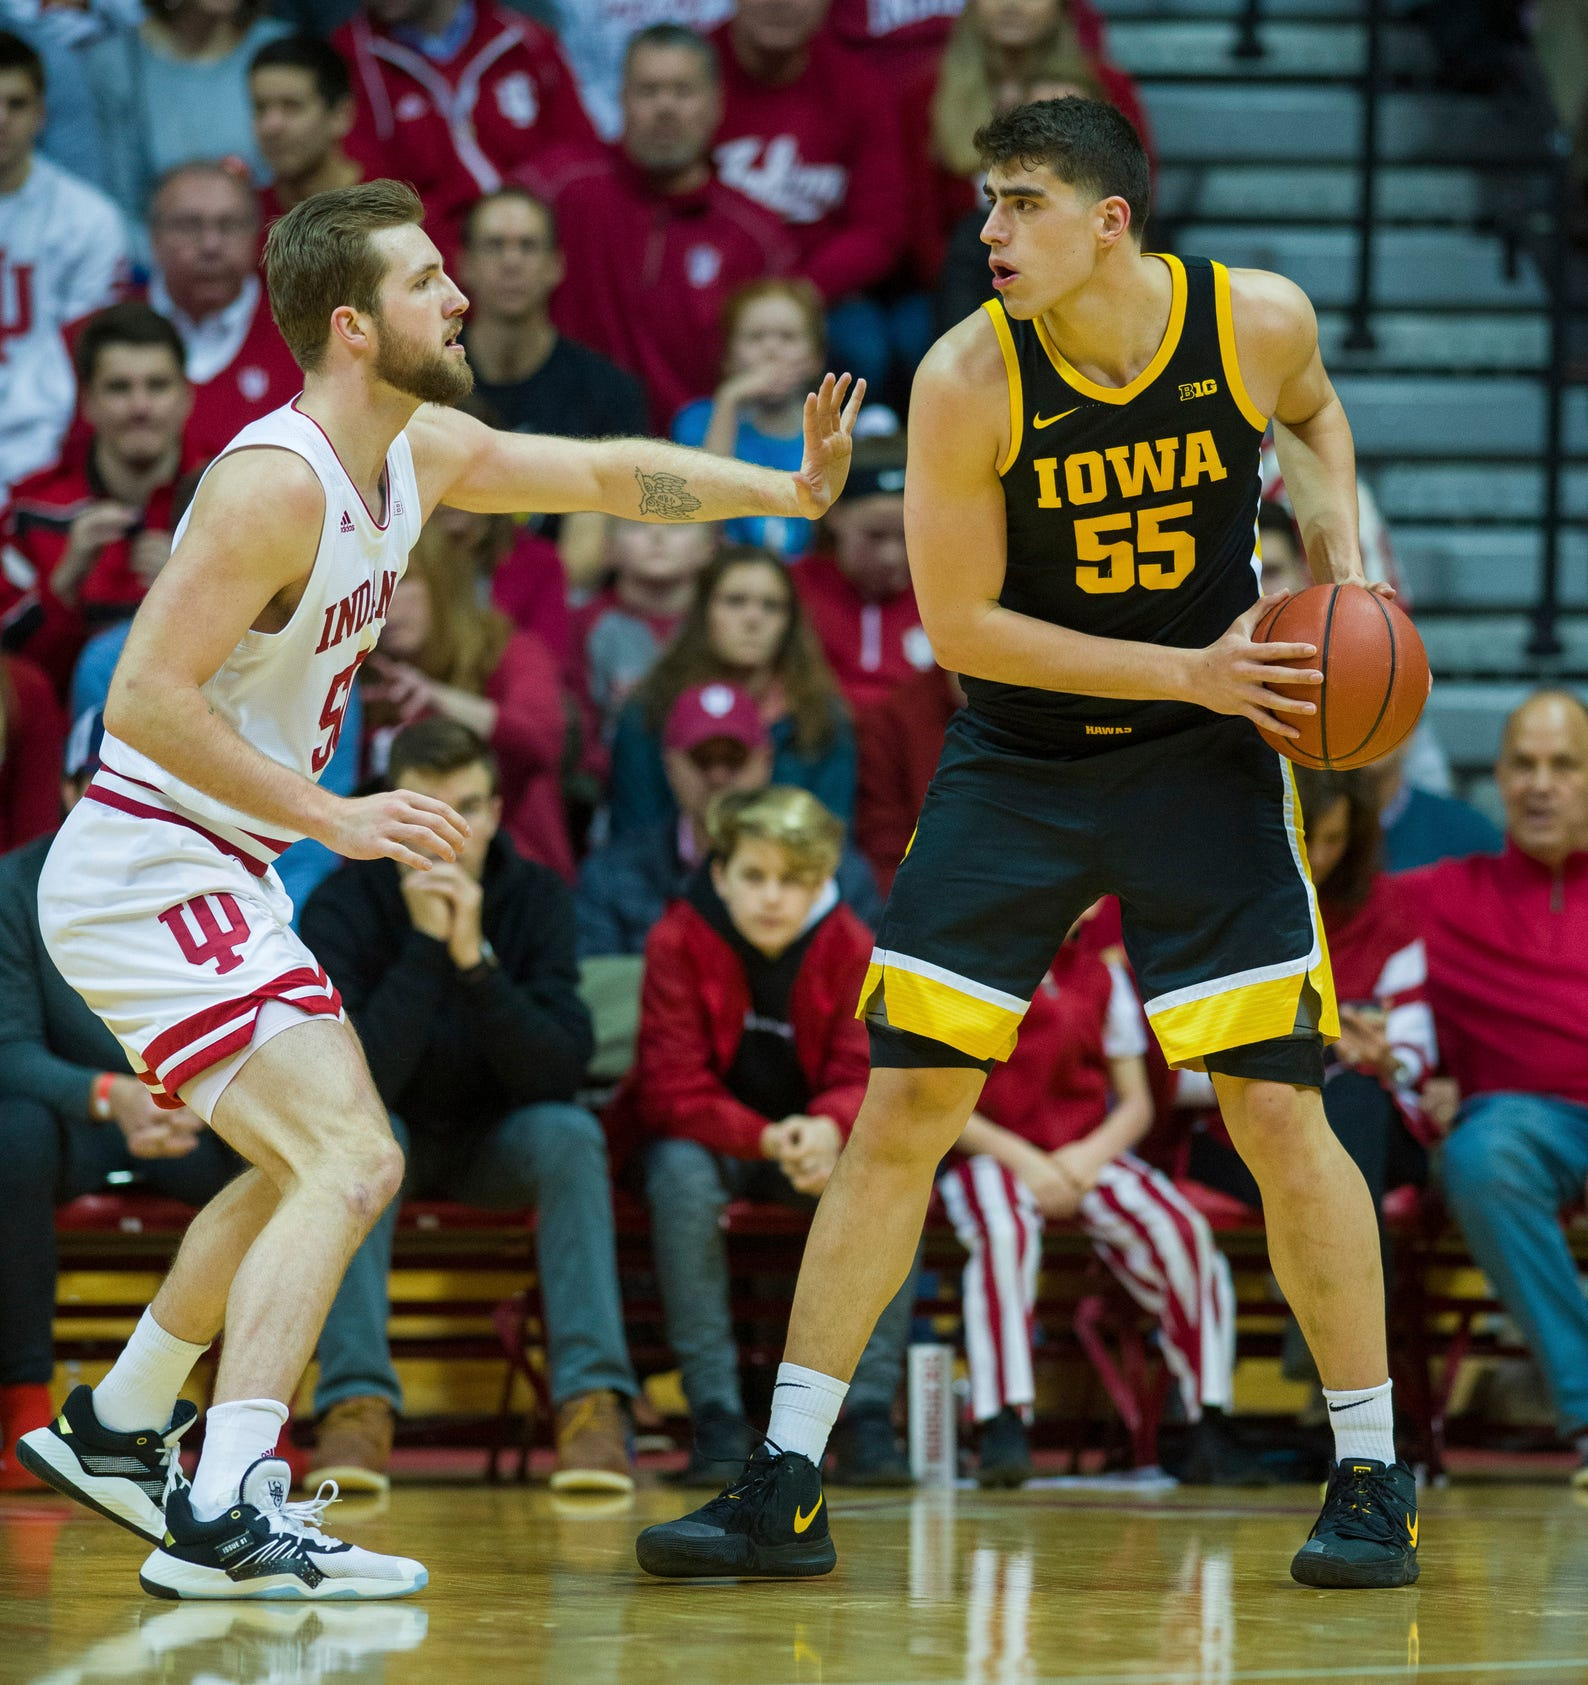 Iowa center Luka Garza (55) is defended by Indiana forward Joey Brunk (50) during the first half of an NCAA college basketball game, Thursday, Feb. 13, 2020, in Bloomington, Ind. (AP Photo/Doug McSchooler)